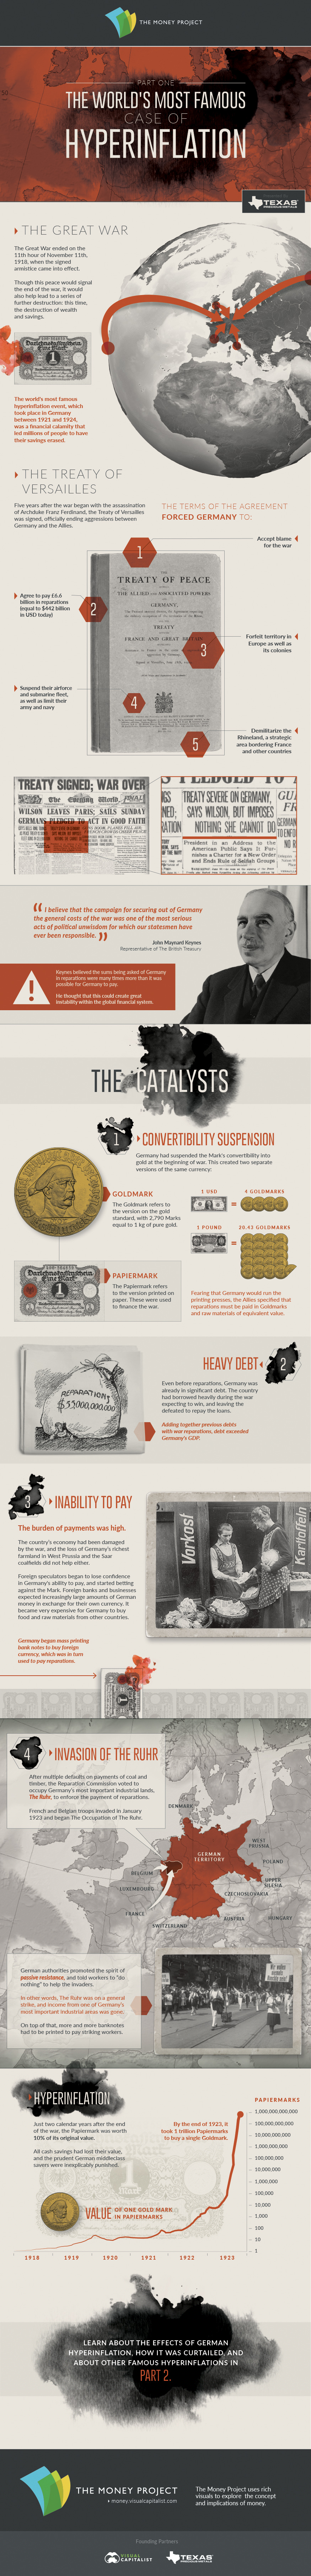 The World's Most Famous Case of Hyperinflation (Part 1 of 2)